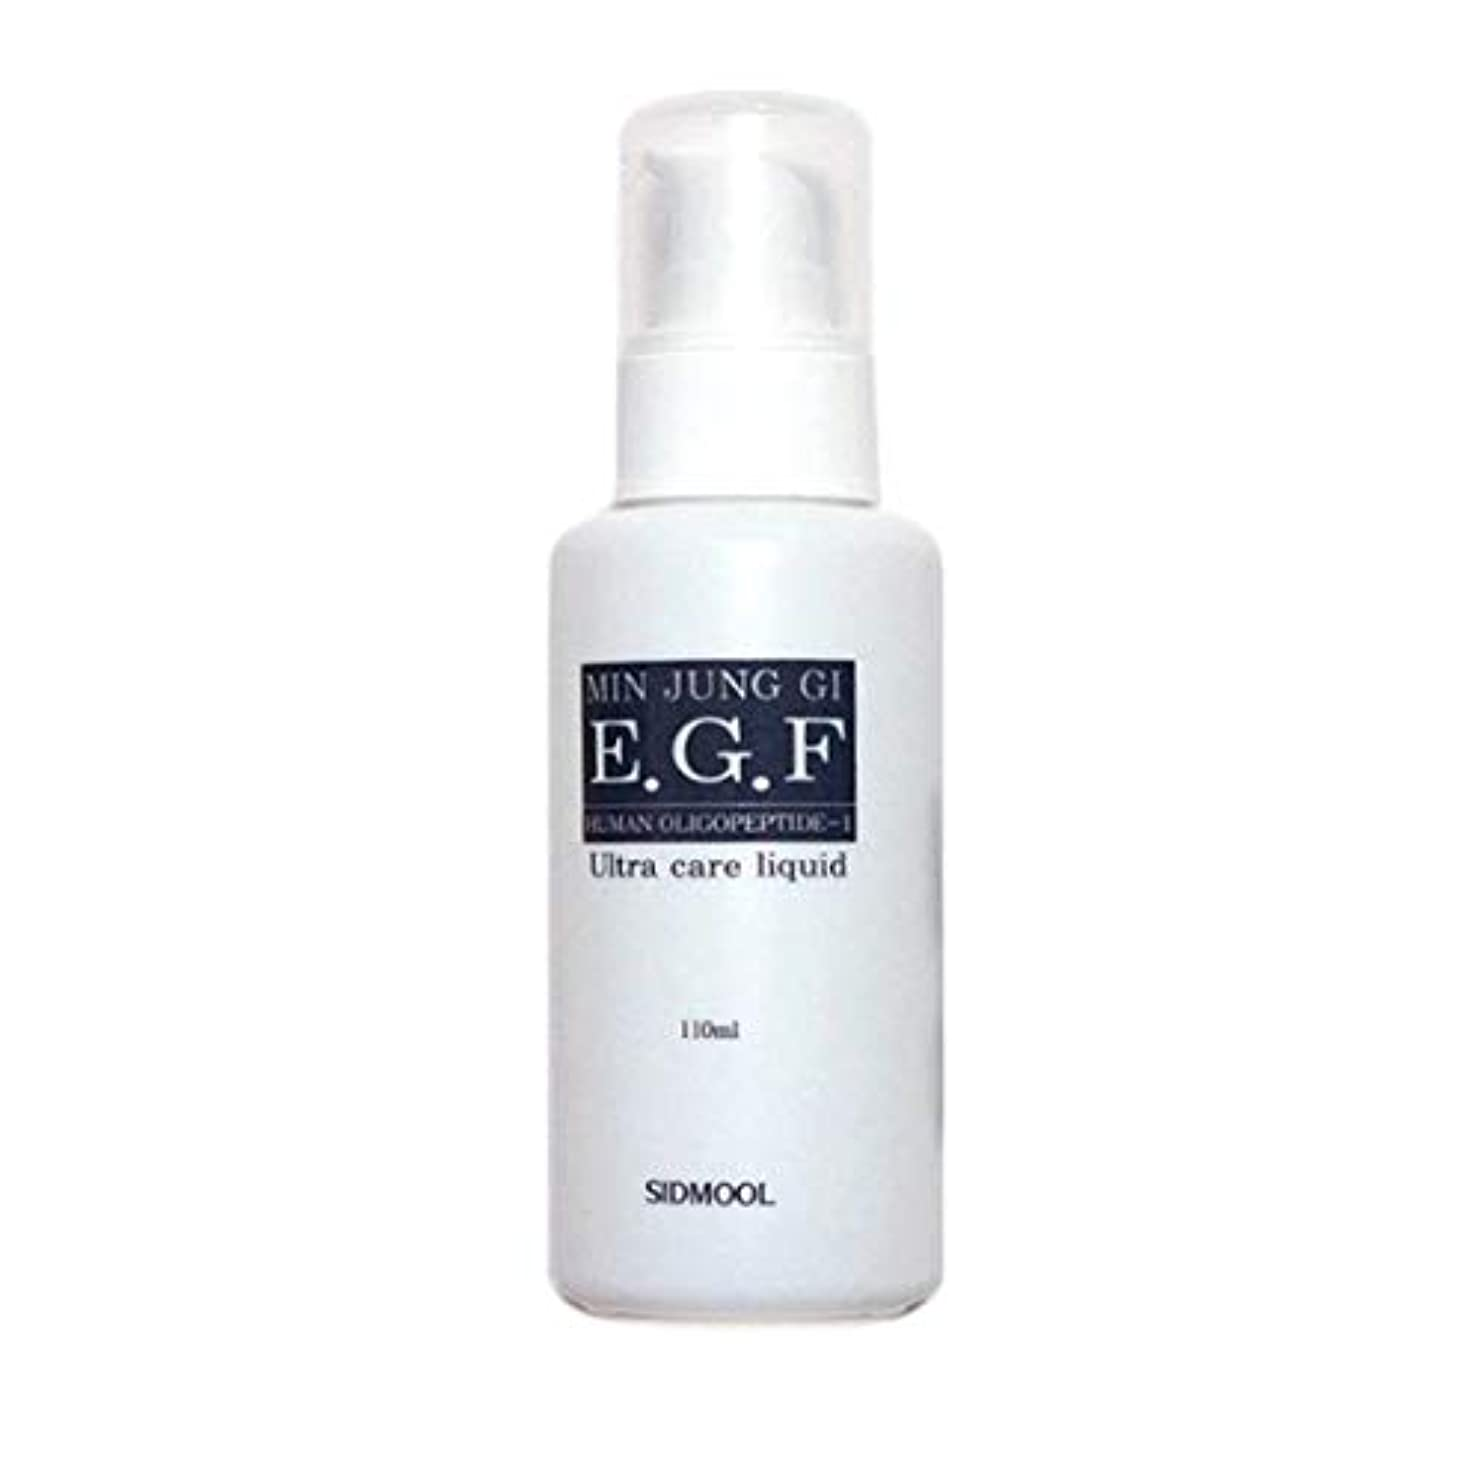 SIDMOOL MIN JUNG GI EGF 110リキッドスキンバリヤ?の?力性のある爽やかな補給用110ml SIDMOOL MIN JUNG GI EGF 110 LIQUID Reinforcement of...